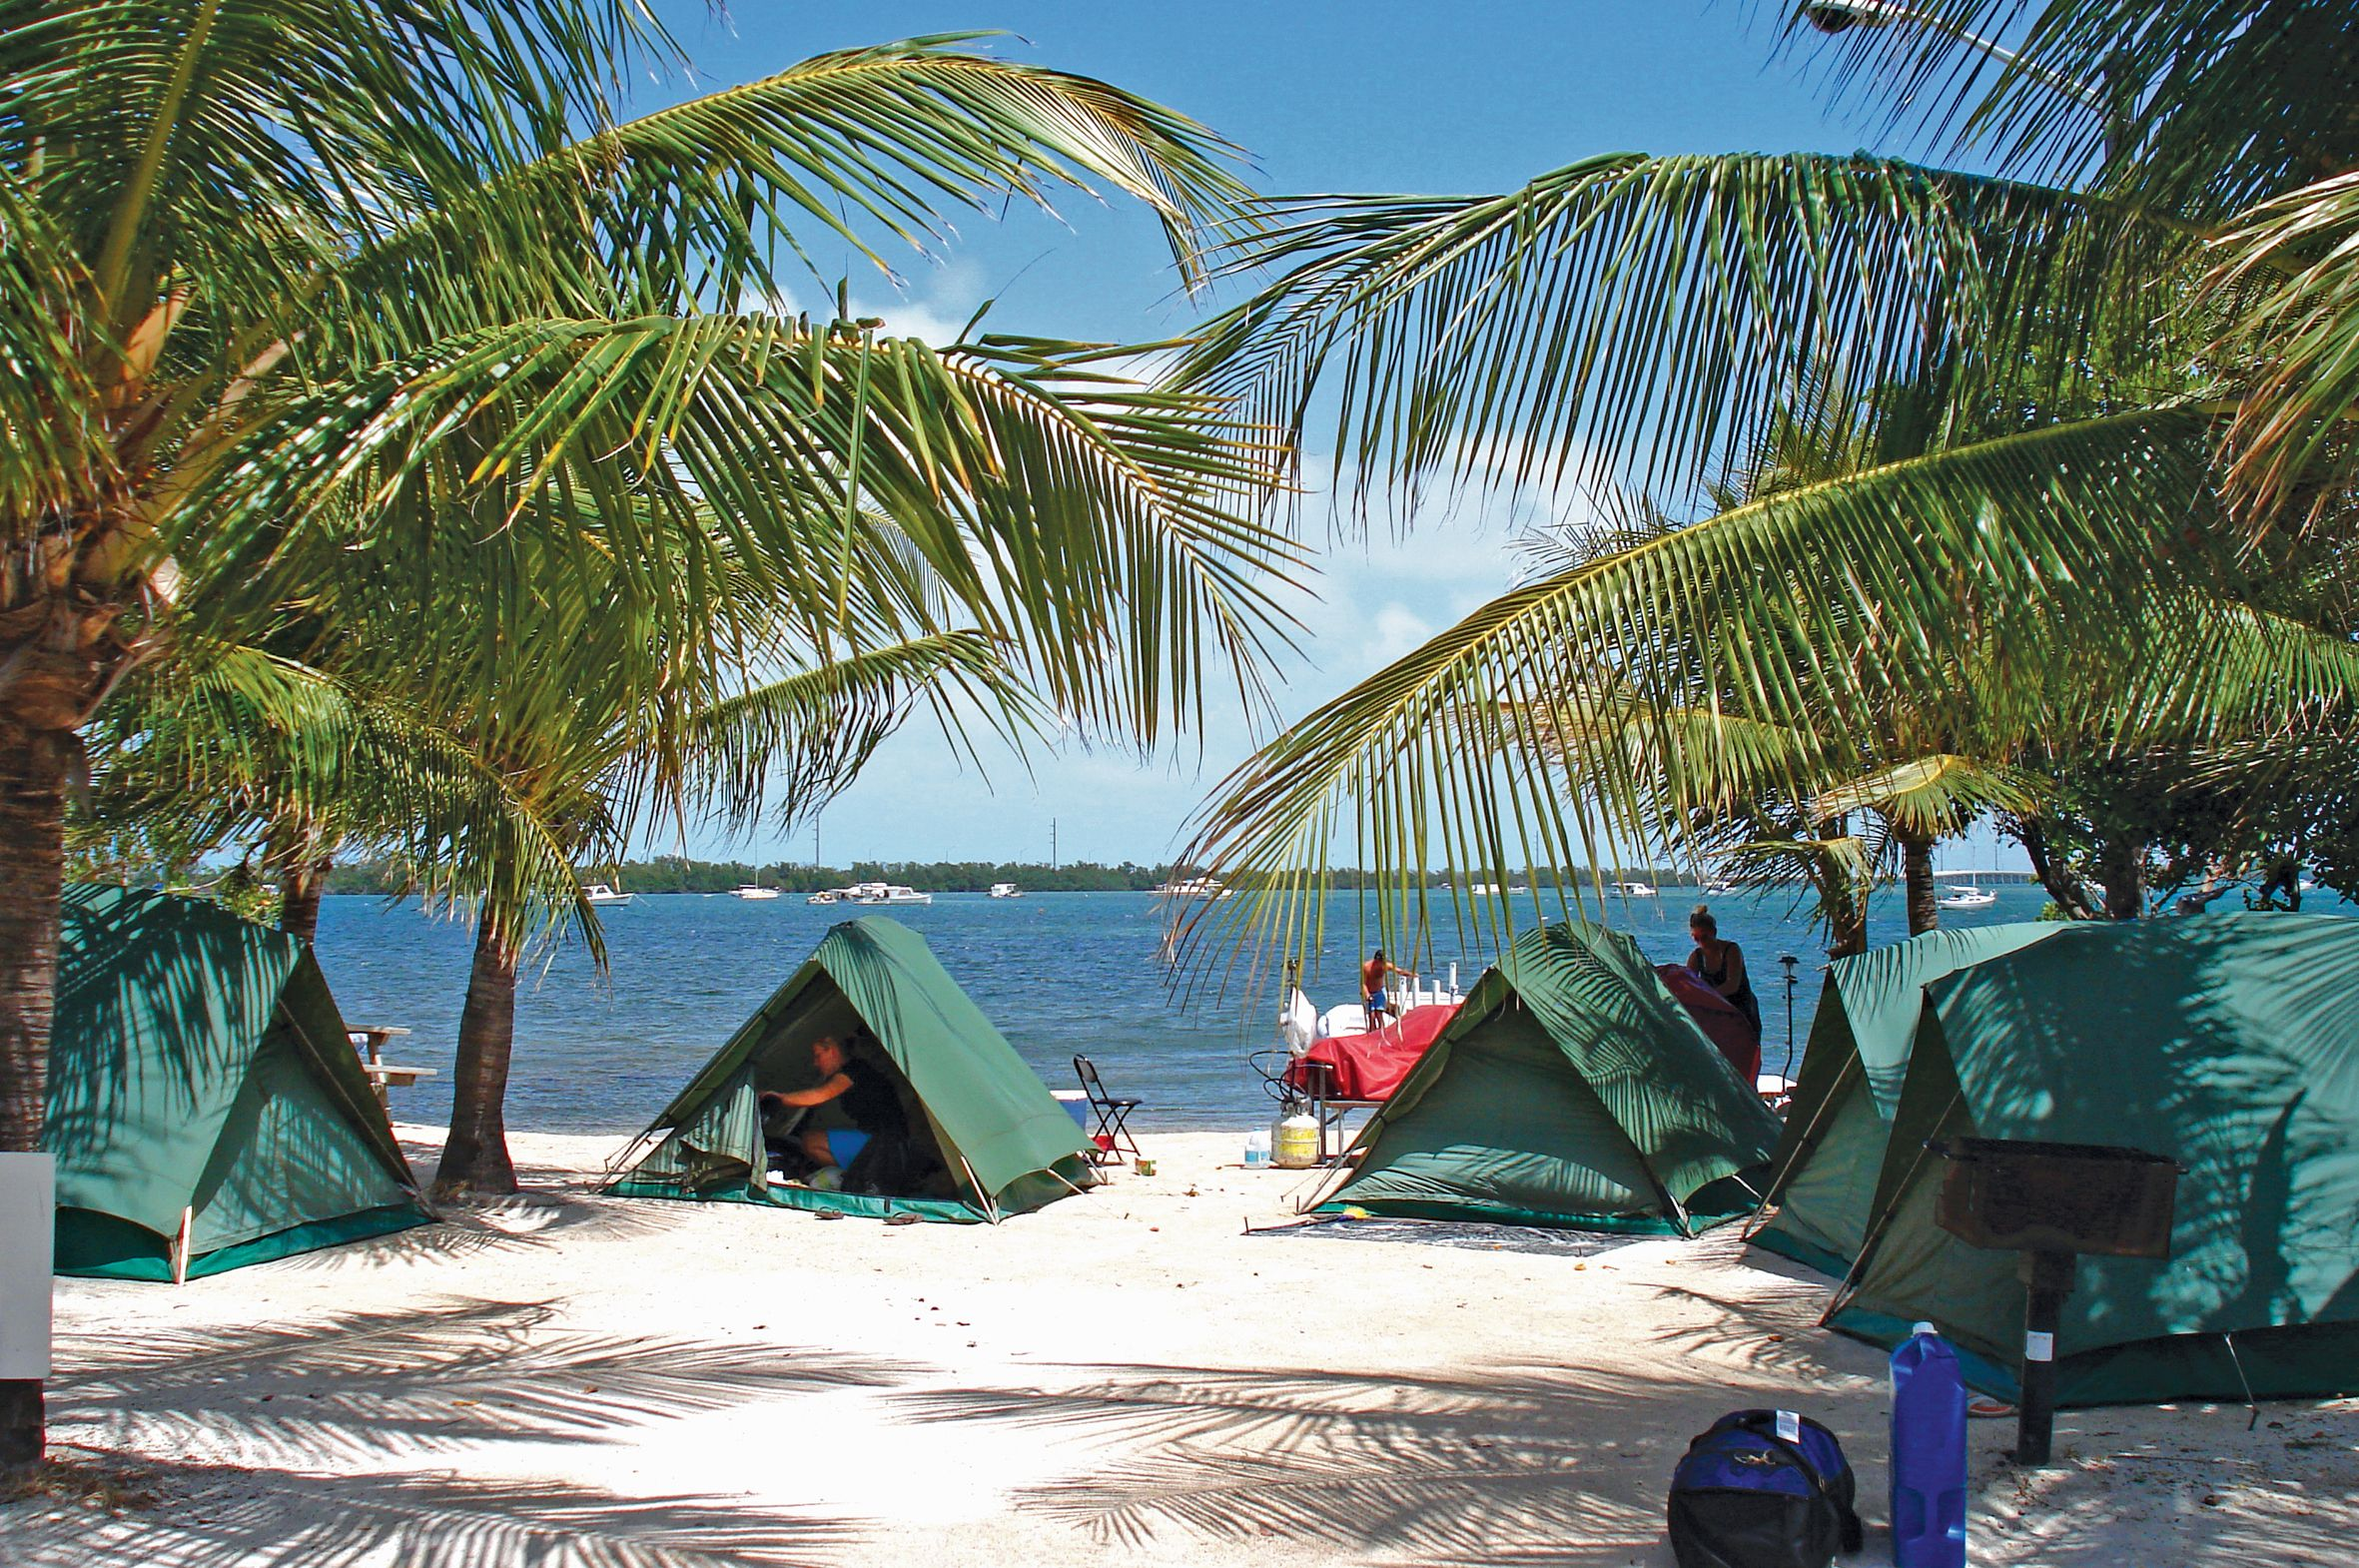 Camping In The Florida Keys